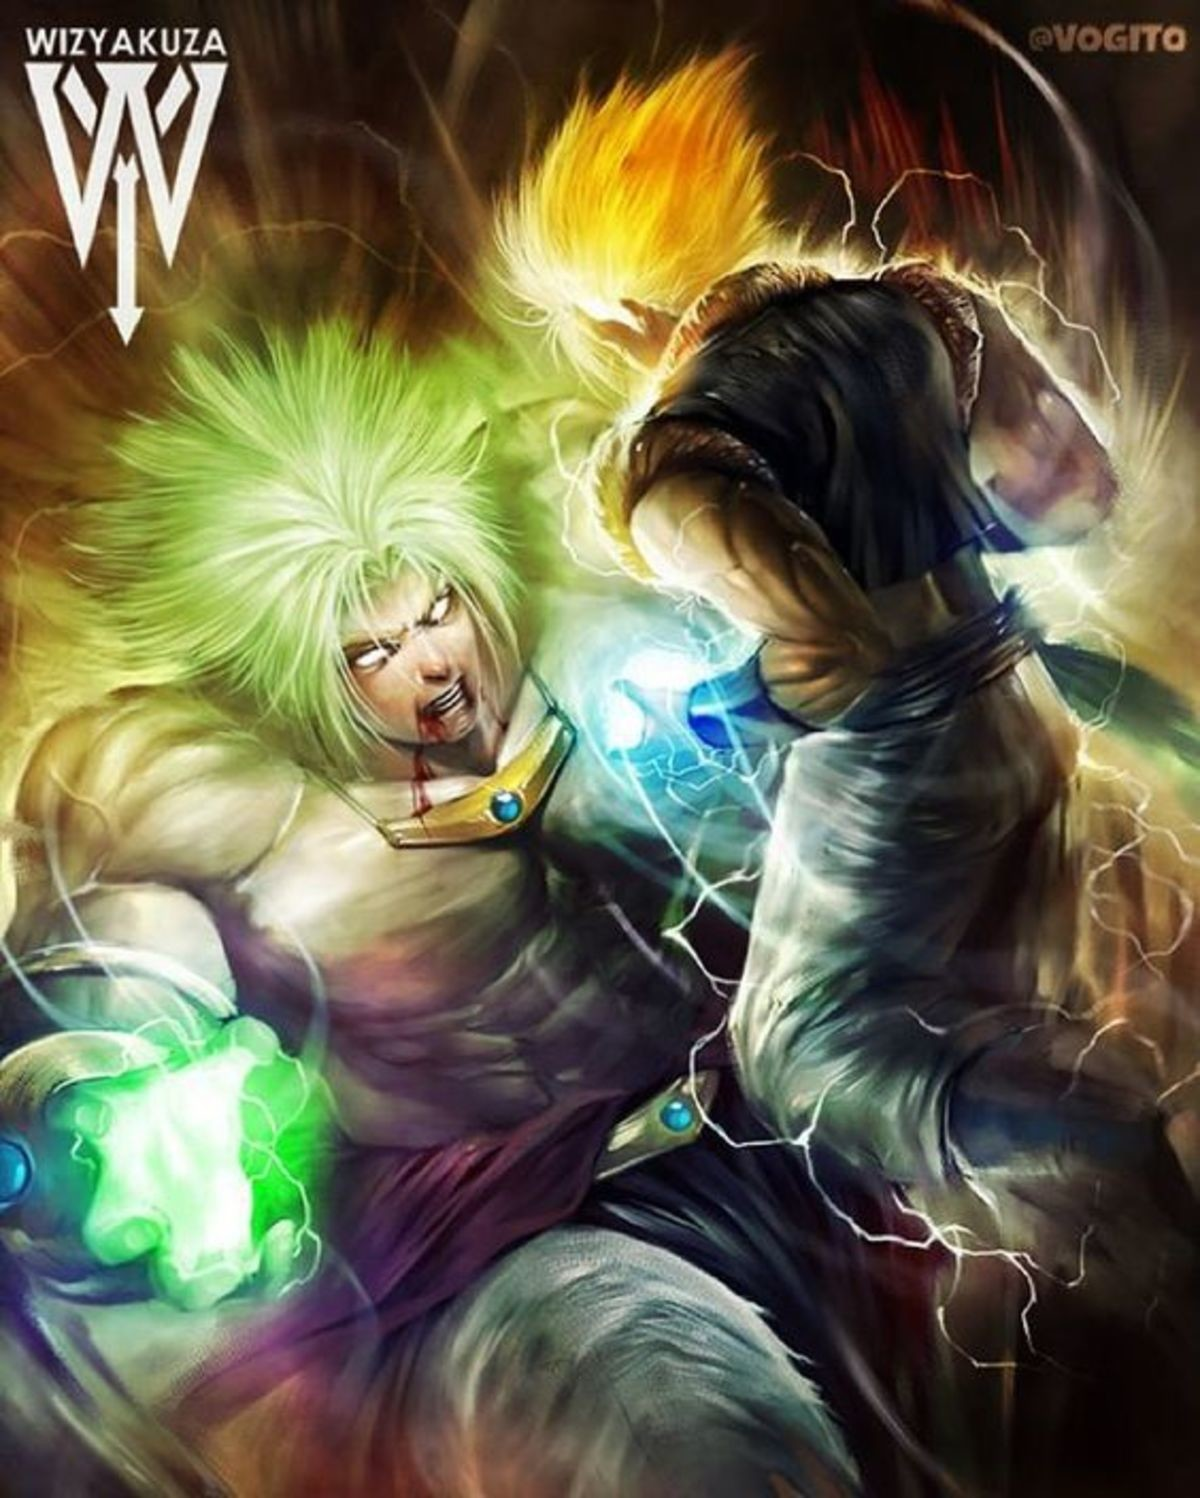 Broly Vs Goku. Gogeta maybe?..  Eh, that's old Broly, so just pop his